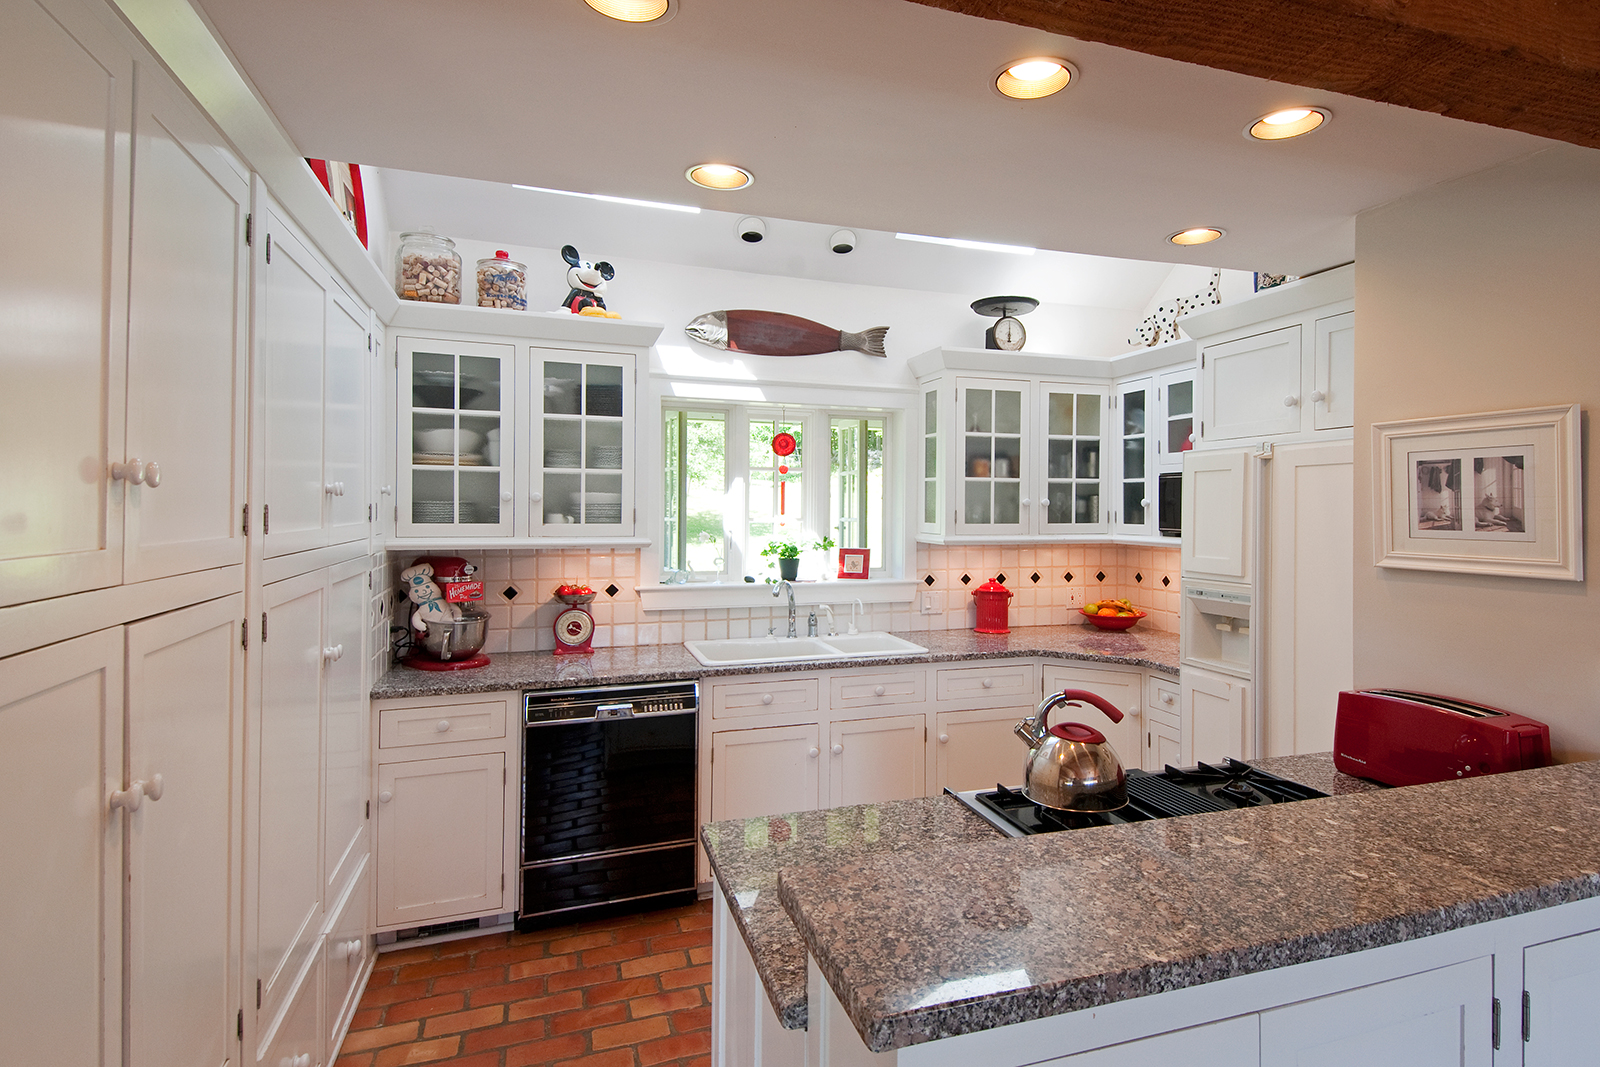 Kitchen Lighting Design | Kitchen Lighting Design Guidelines | HouseLogic